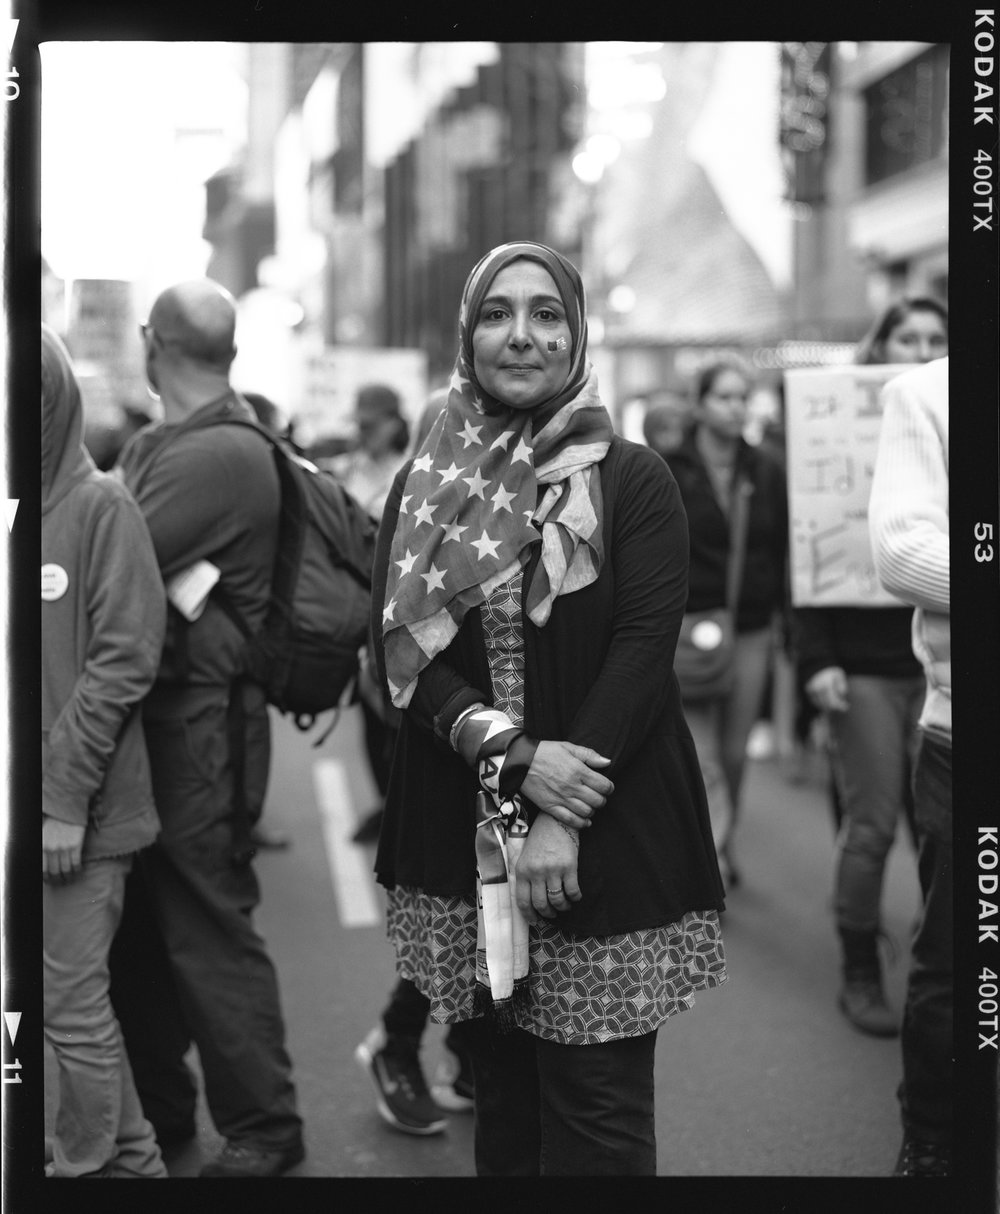 amber_mahoney_the_resistance_today_i_am_muslim_too_new_york_012.jpg